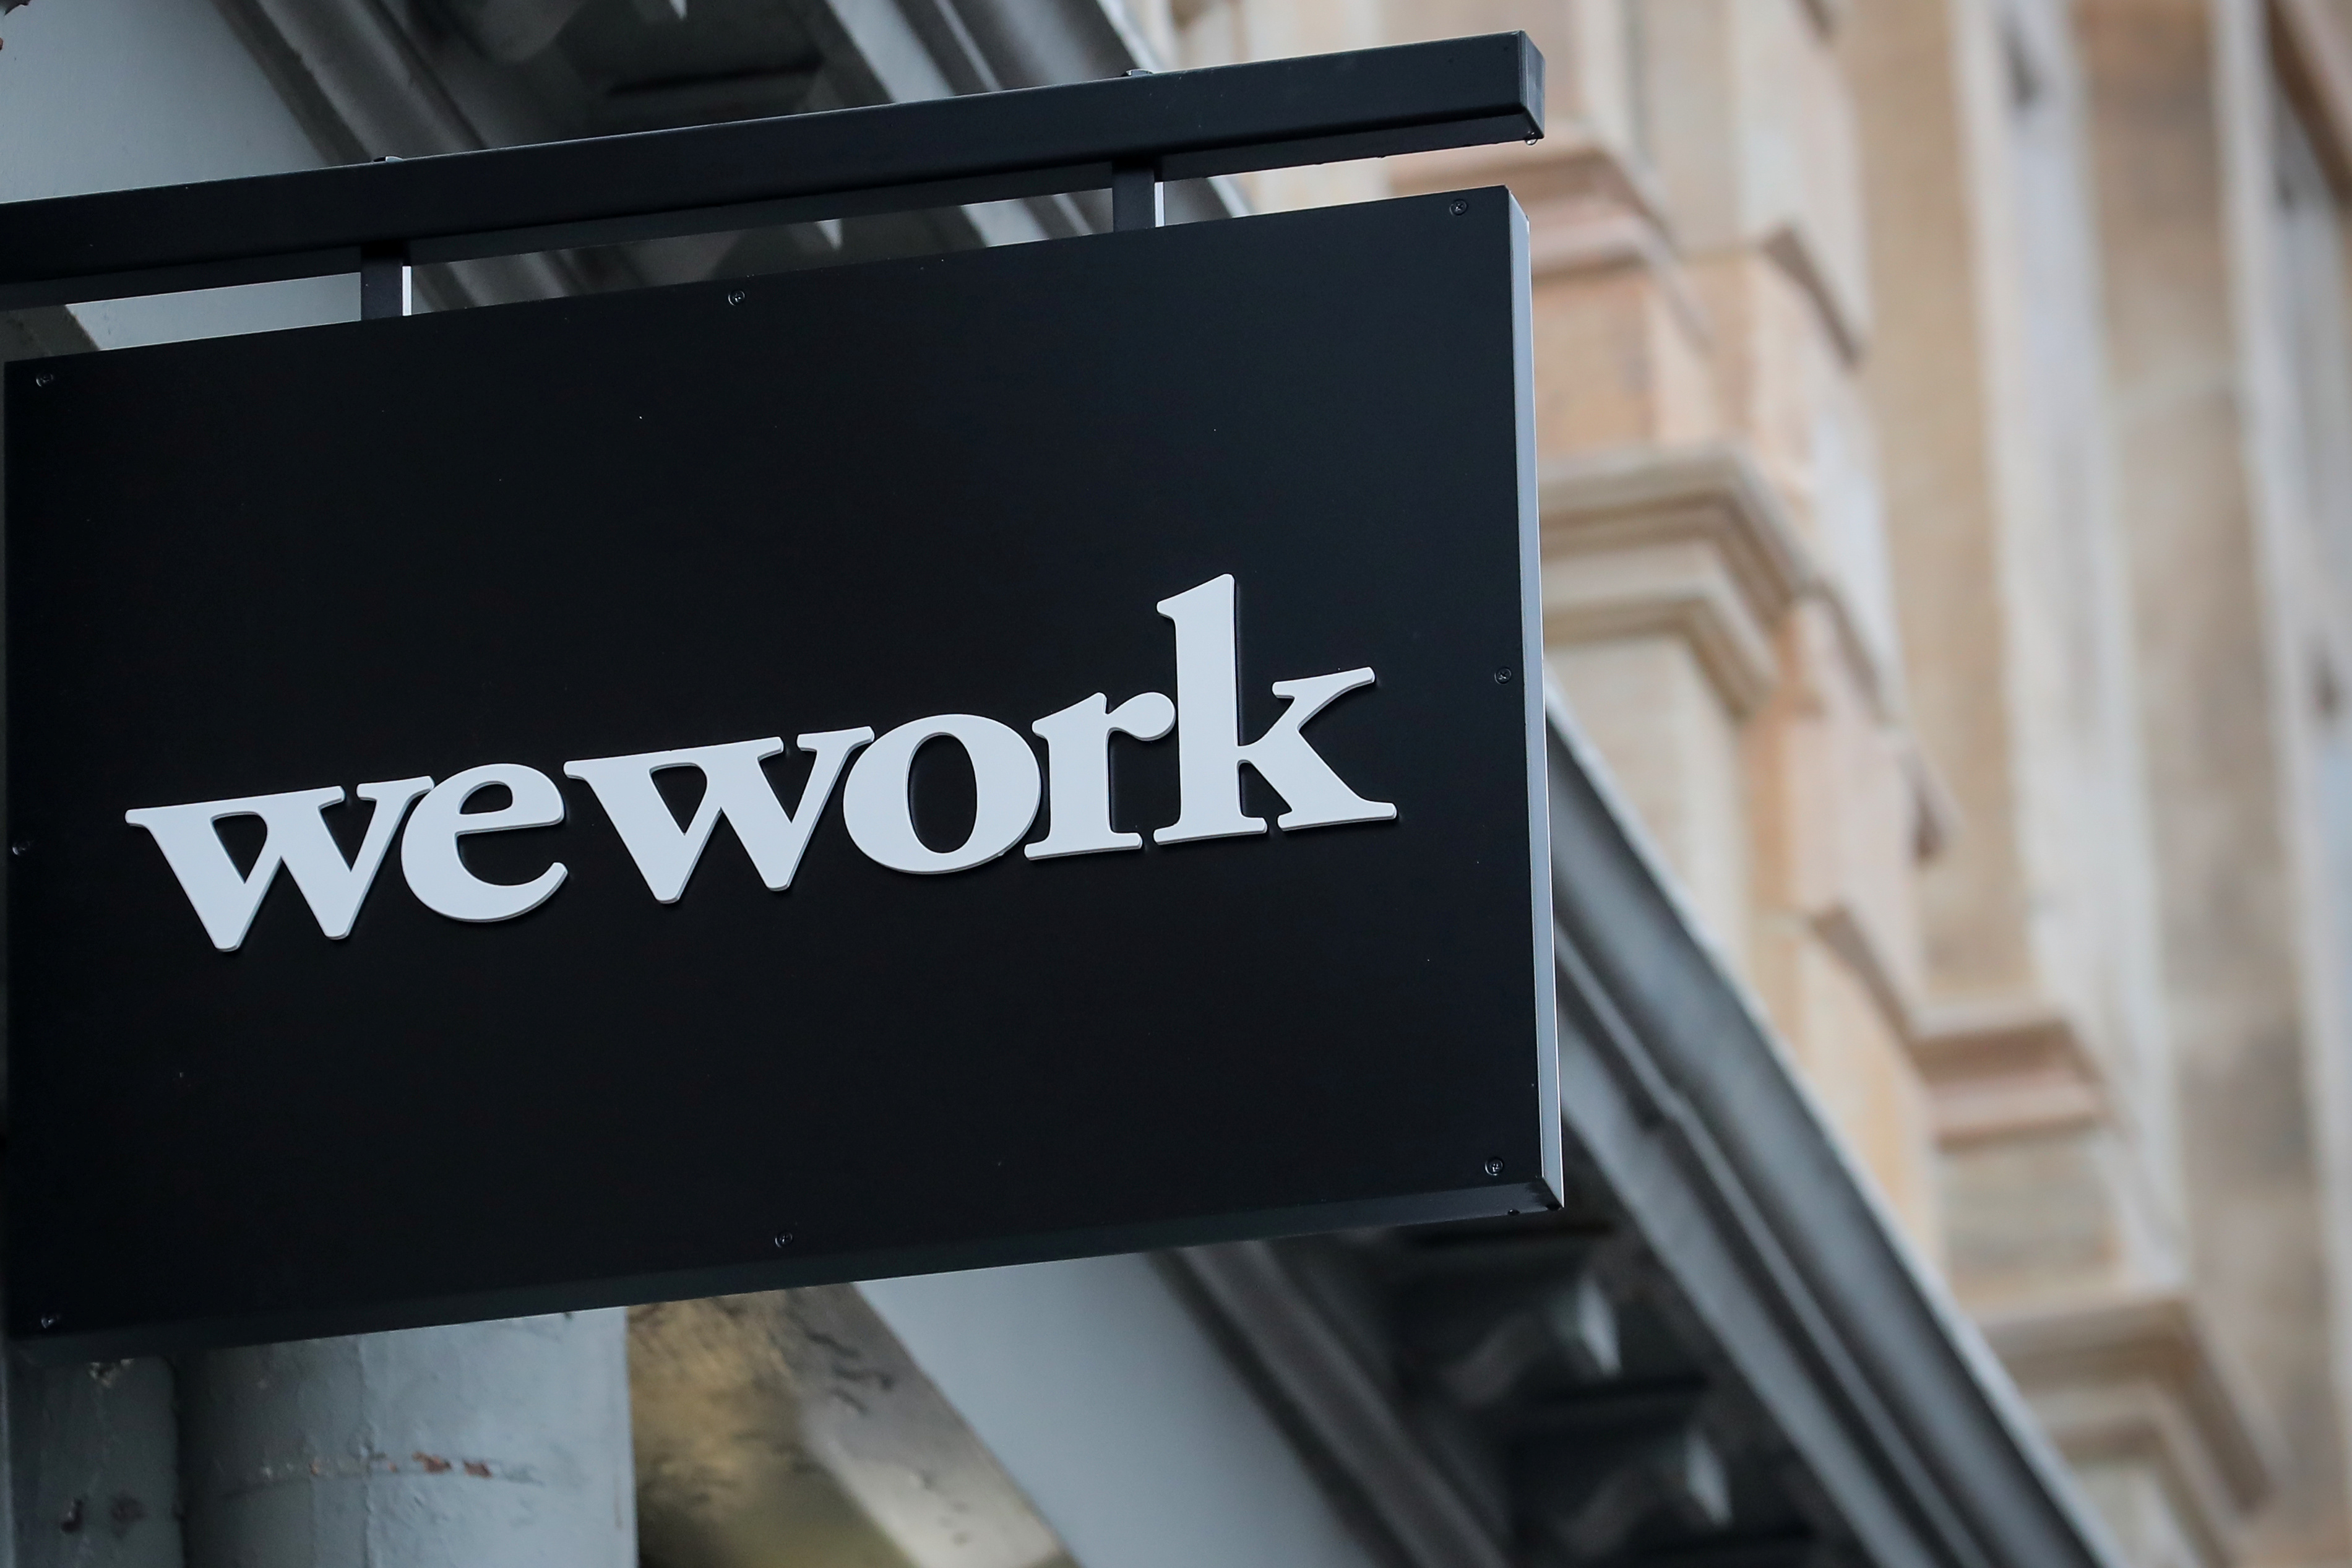 WeWork said to raise up to $4b in debt ahead of IPO